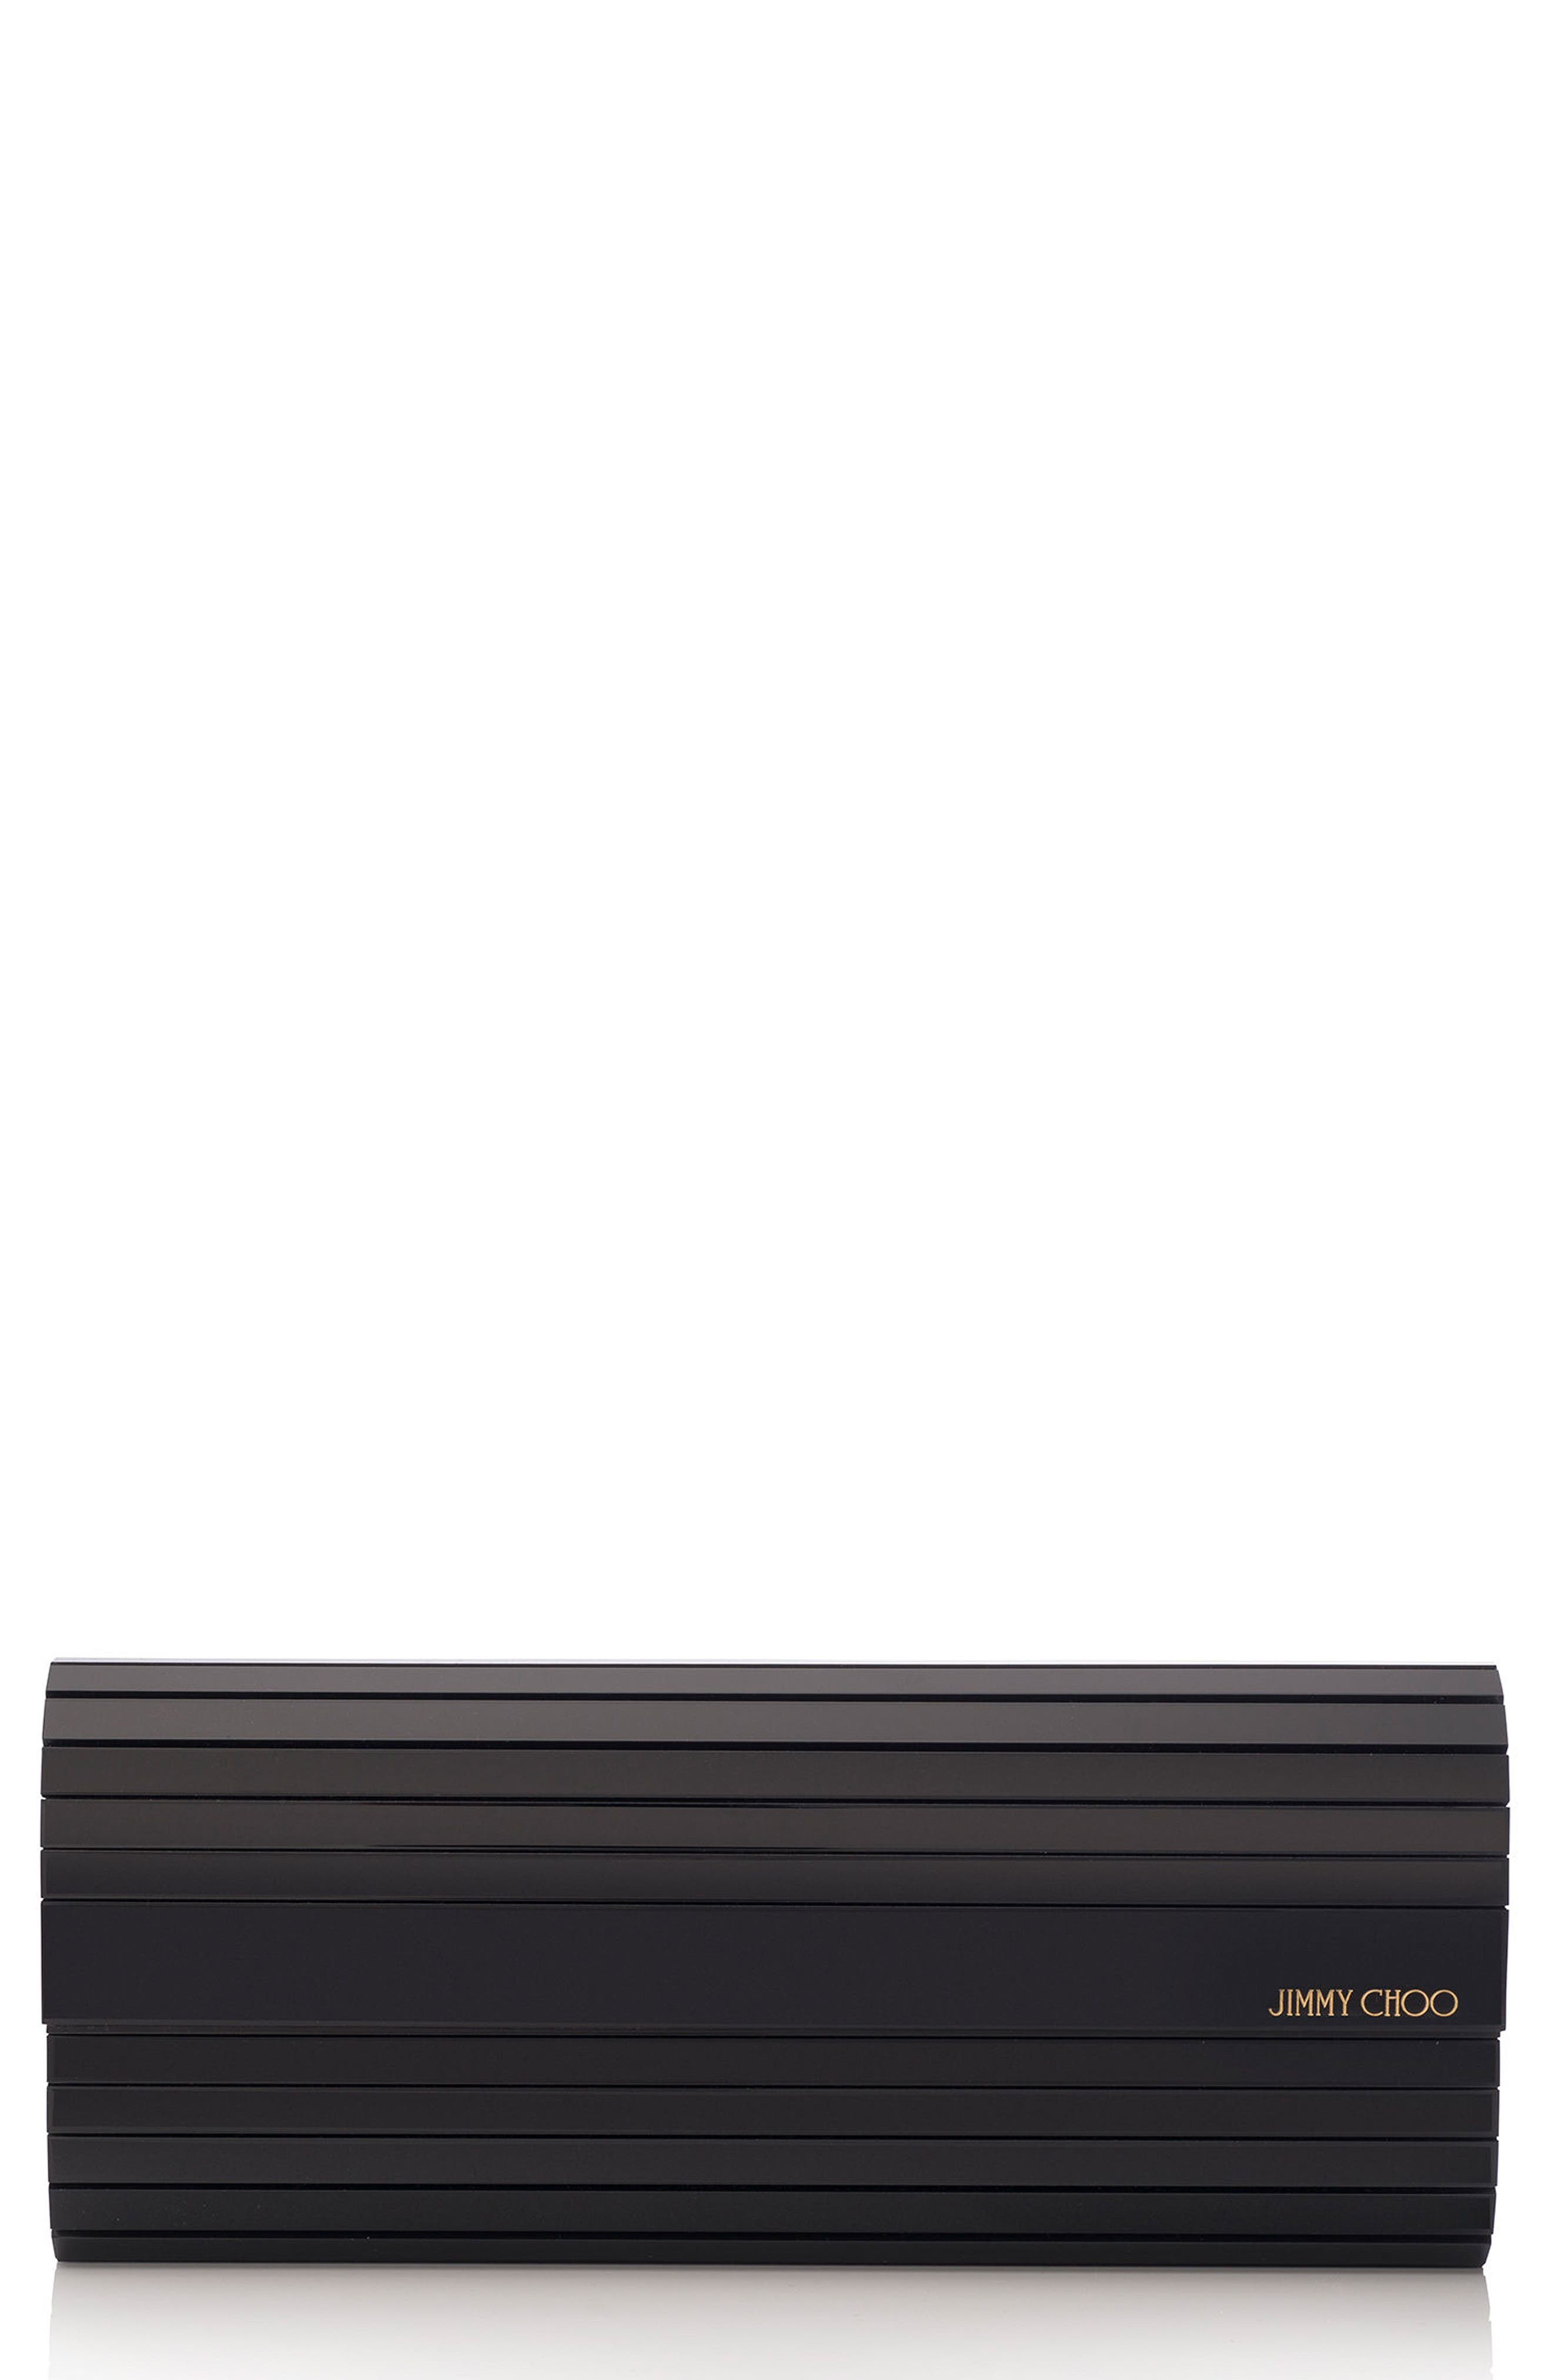 Sweetie Acrylic Clutch,                         Main,                         color, Black